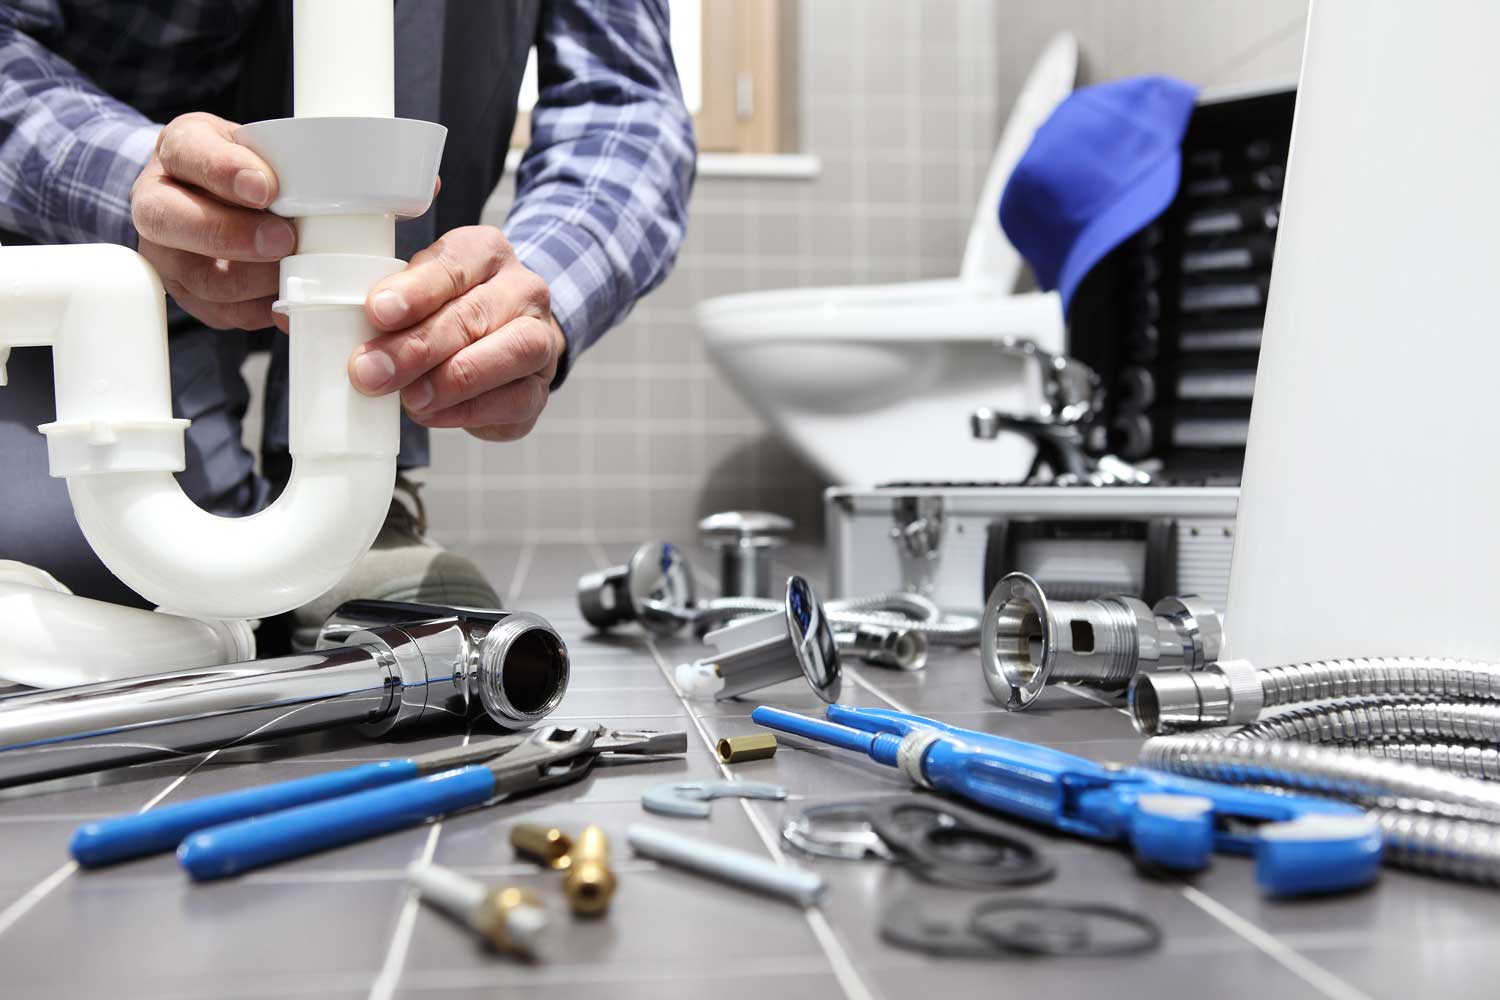 Talk to our plumbers insurance experts and get the cover you require